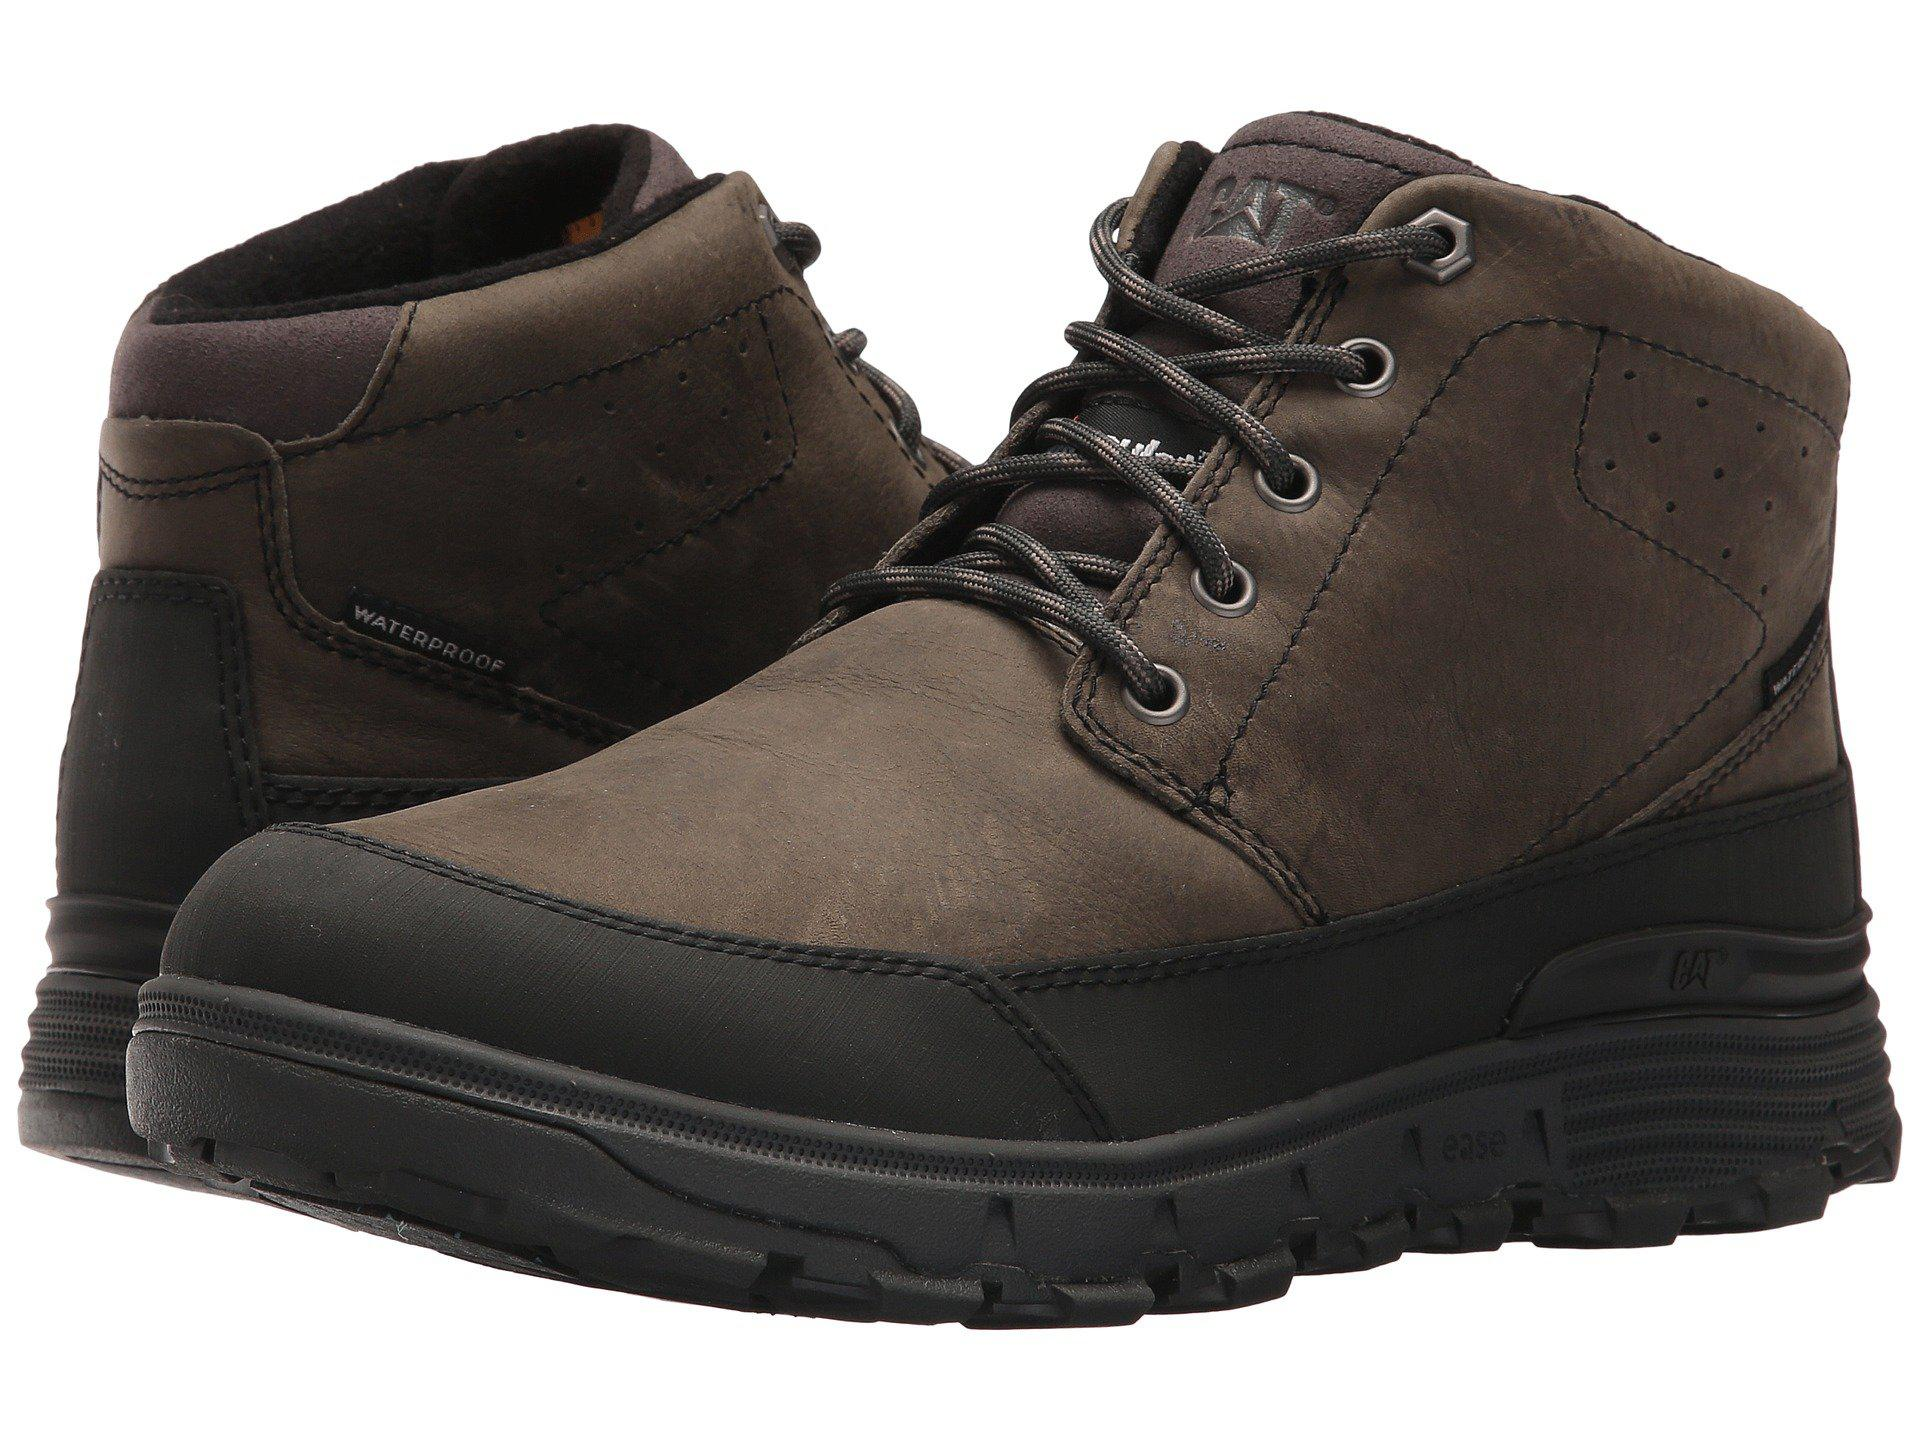 CAT Footwear Drover Ice + Waterproof TX Leather Chukka Boot FHcNqFhKV